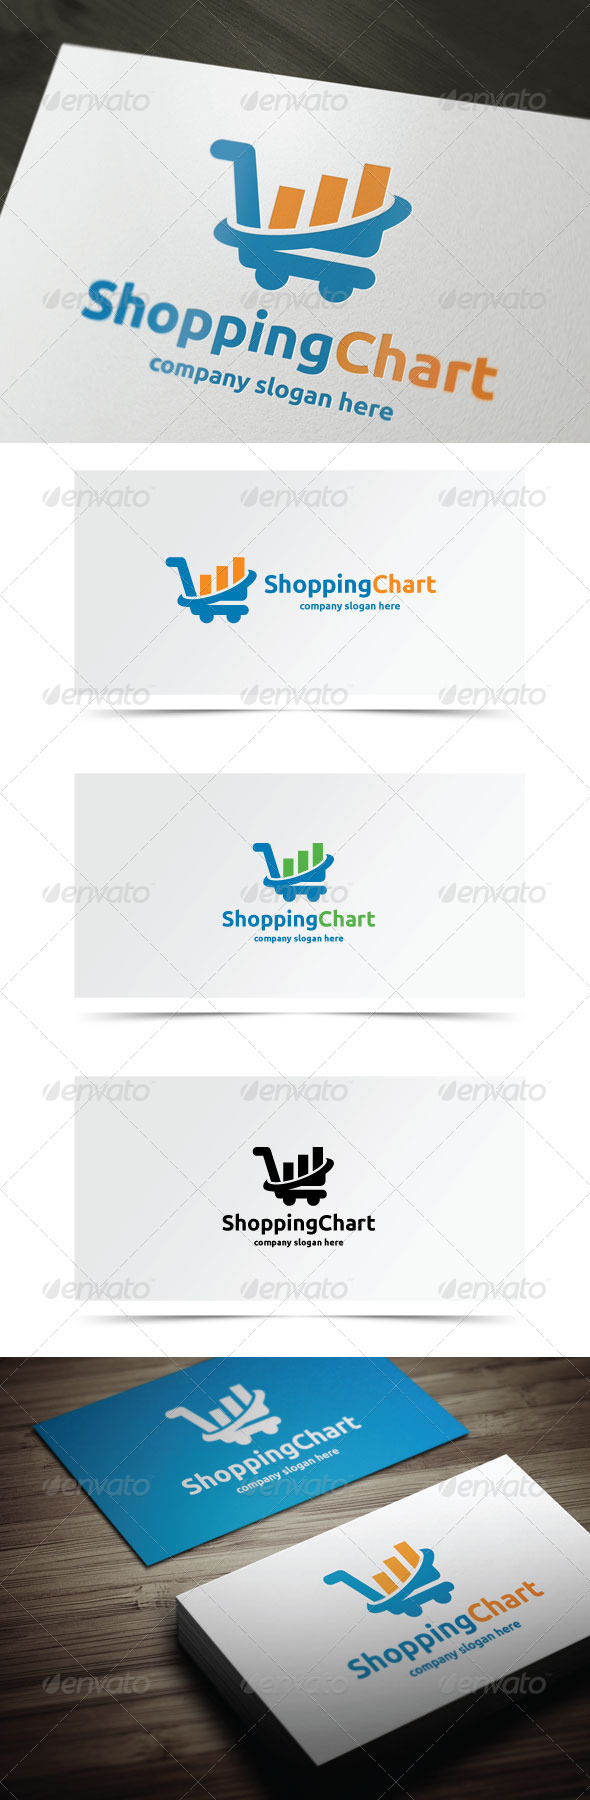 GraphicRiver Shopping Chart 7931905